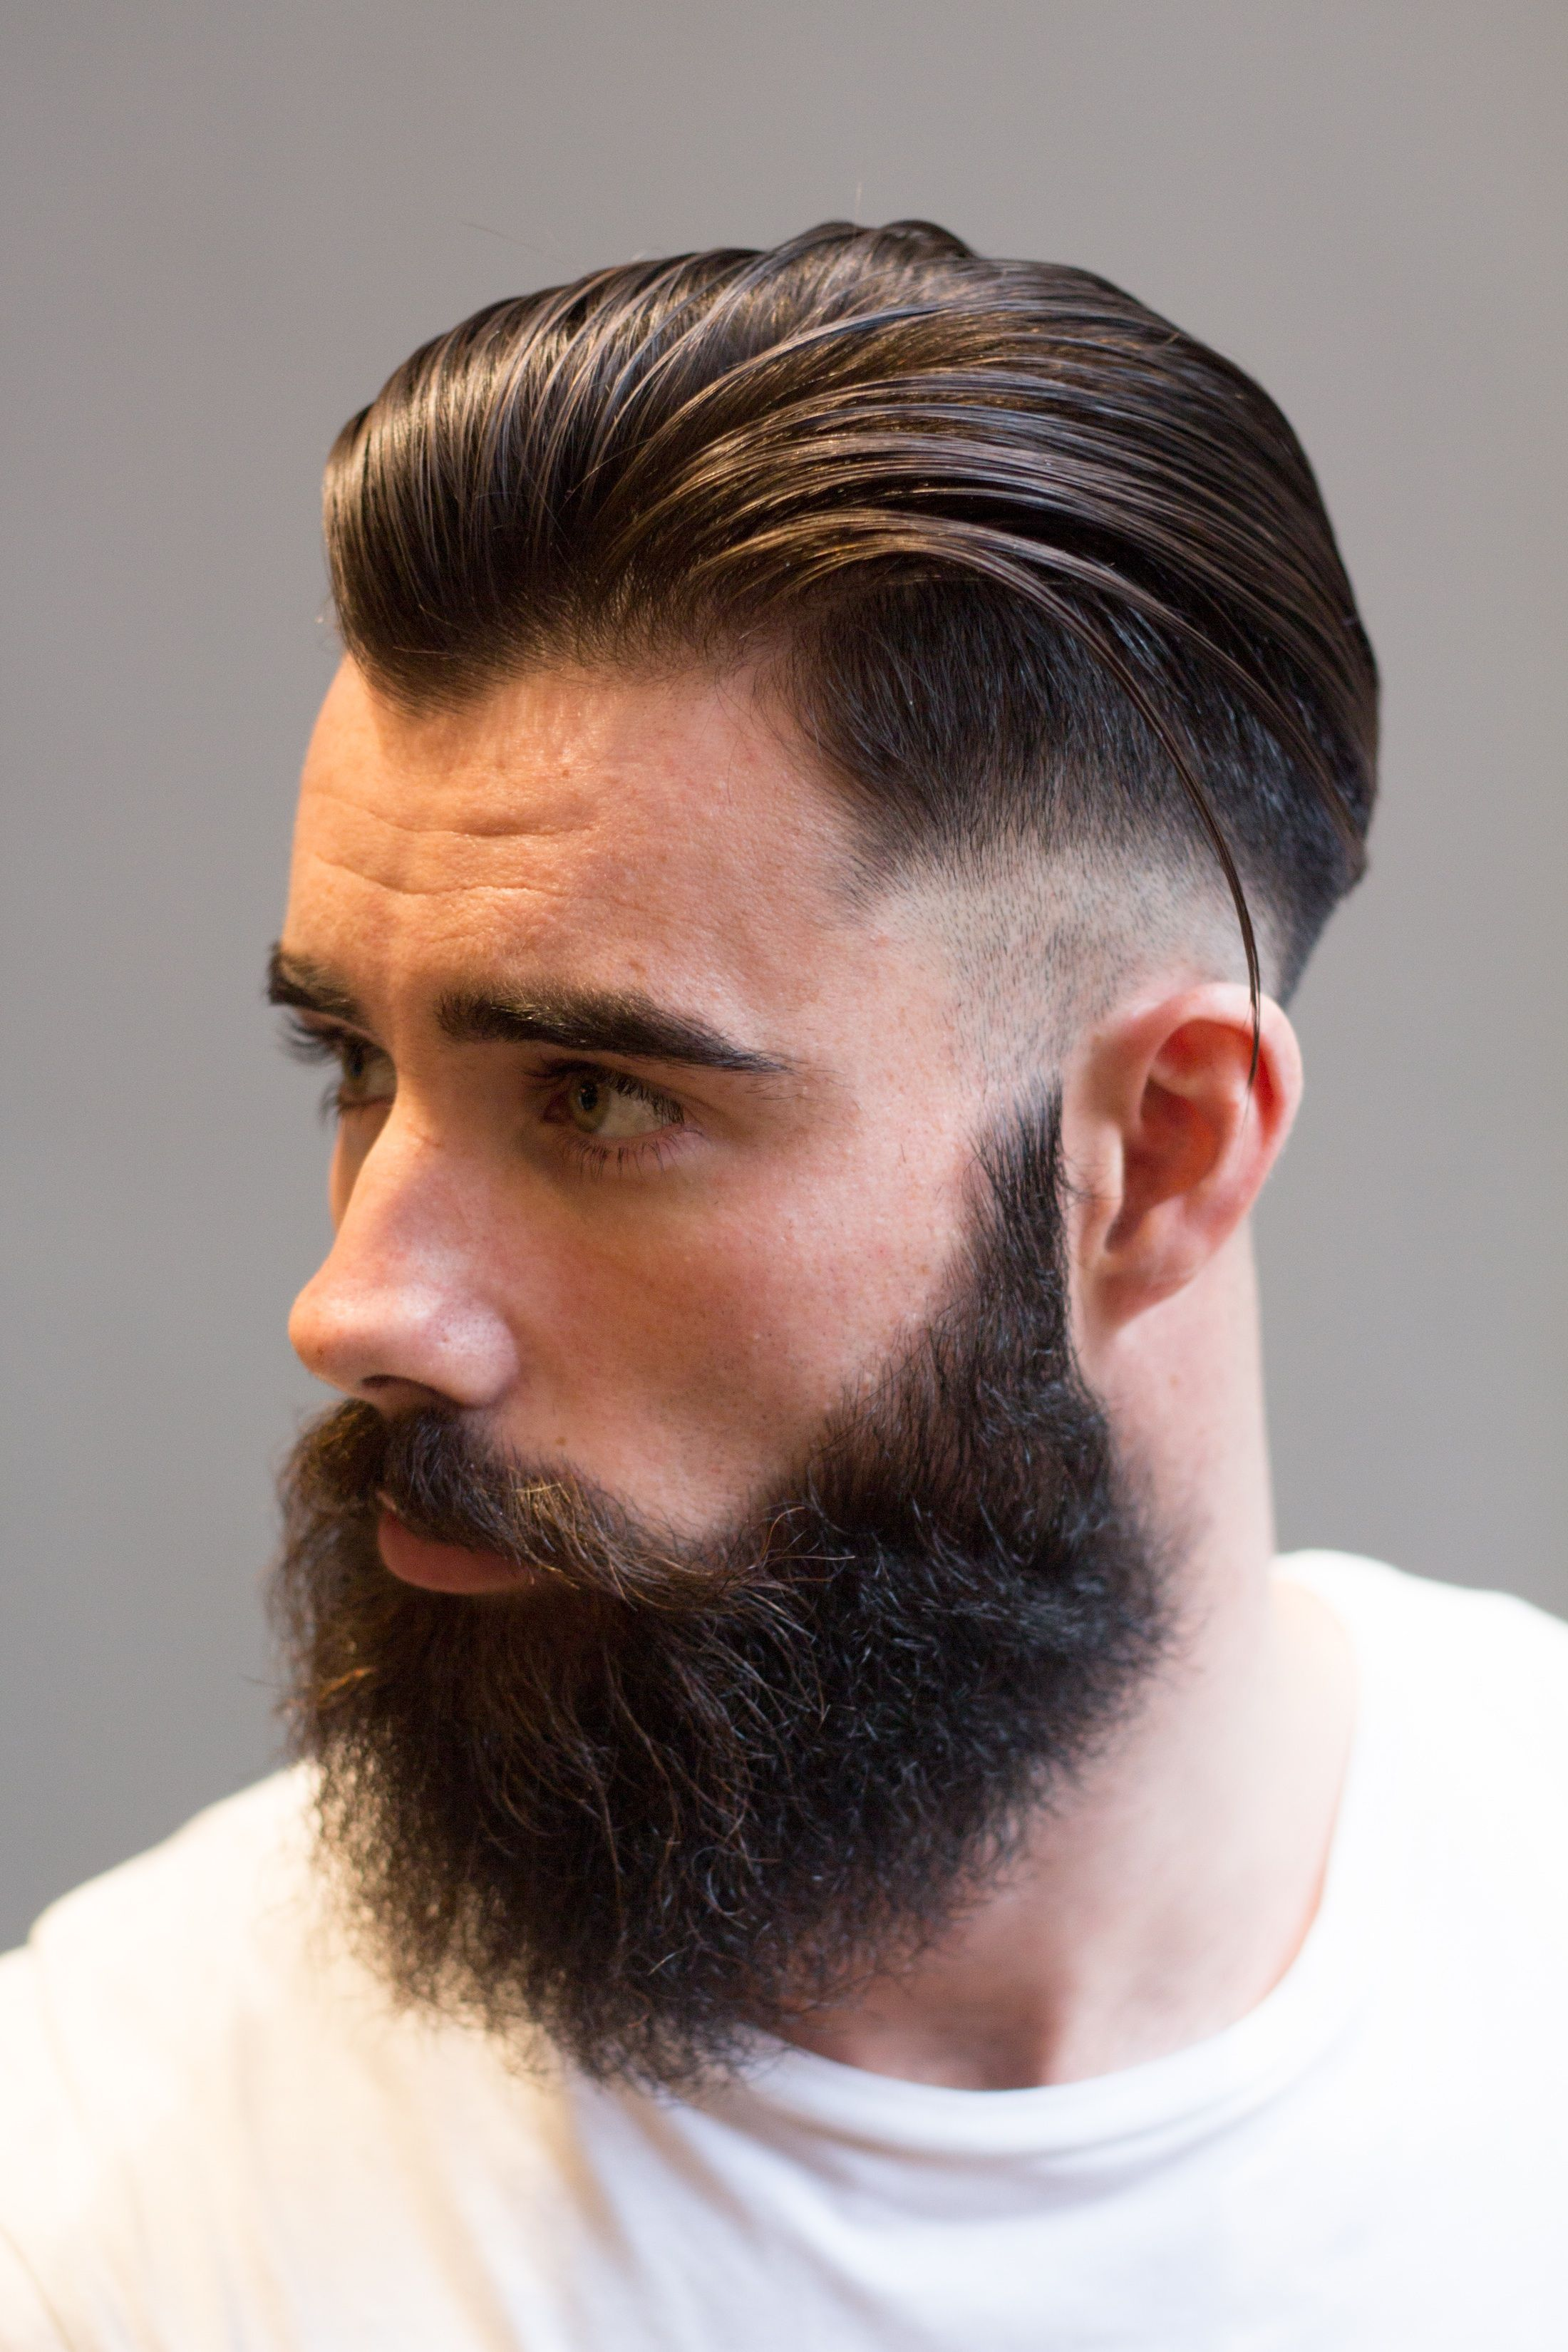 Coiffure Hipster 2018 James Fade Beard 2 Copy Coiffure Pompadour Rockabilly